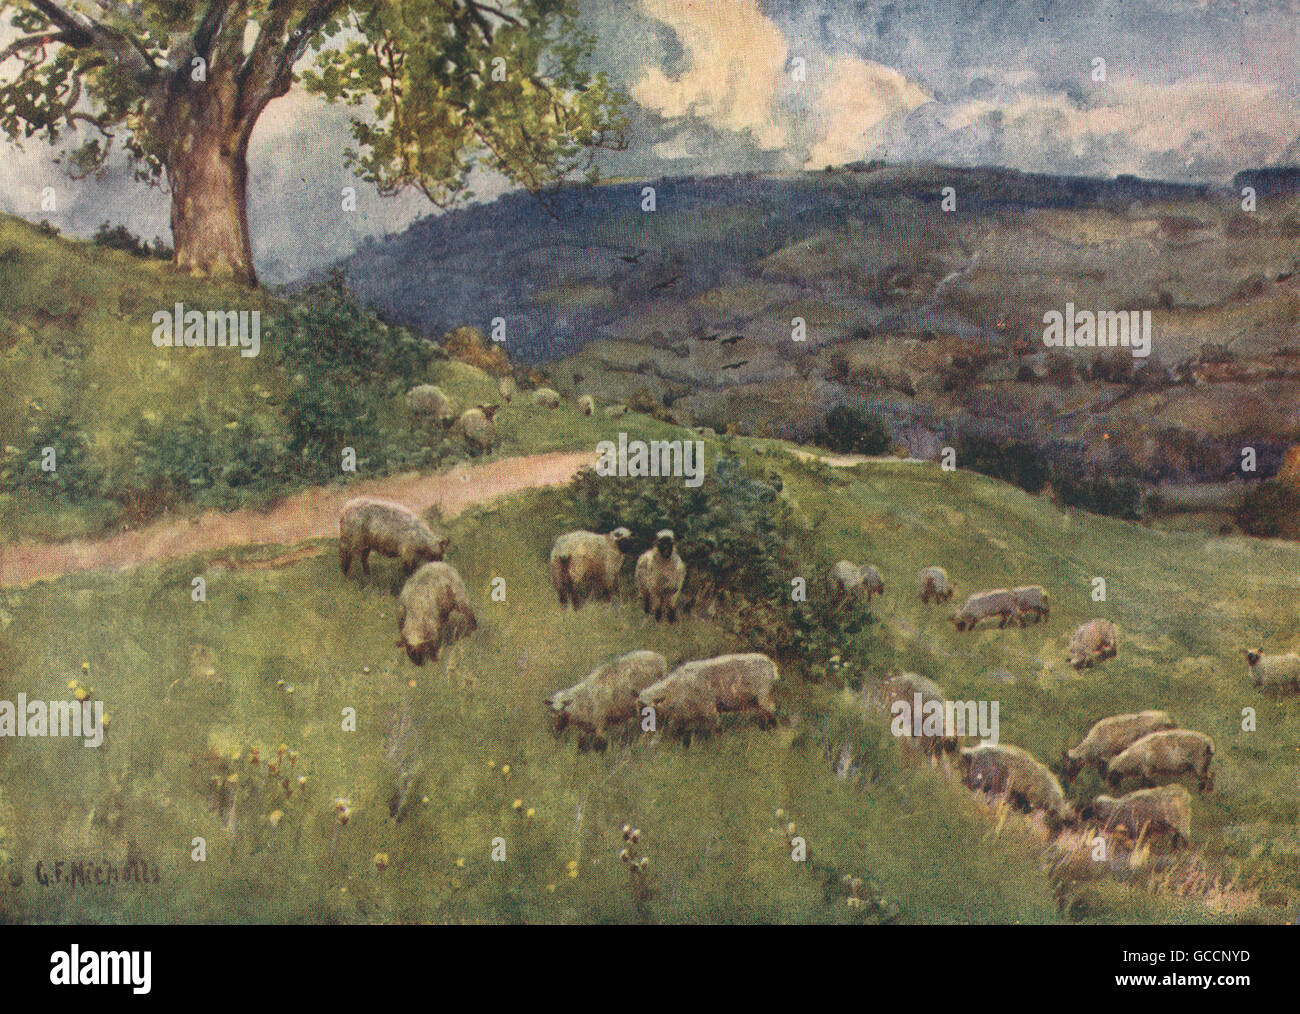 COTSWOLDS. A Cotswold sheep pasture. By GF Nicholls, antique print 1908 - Stock Image